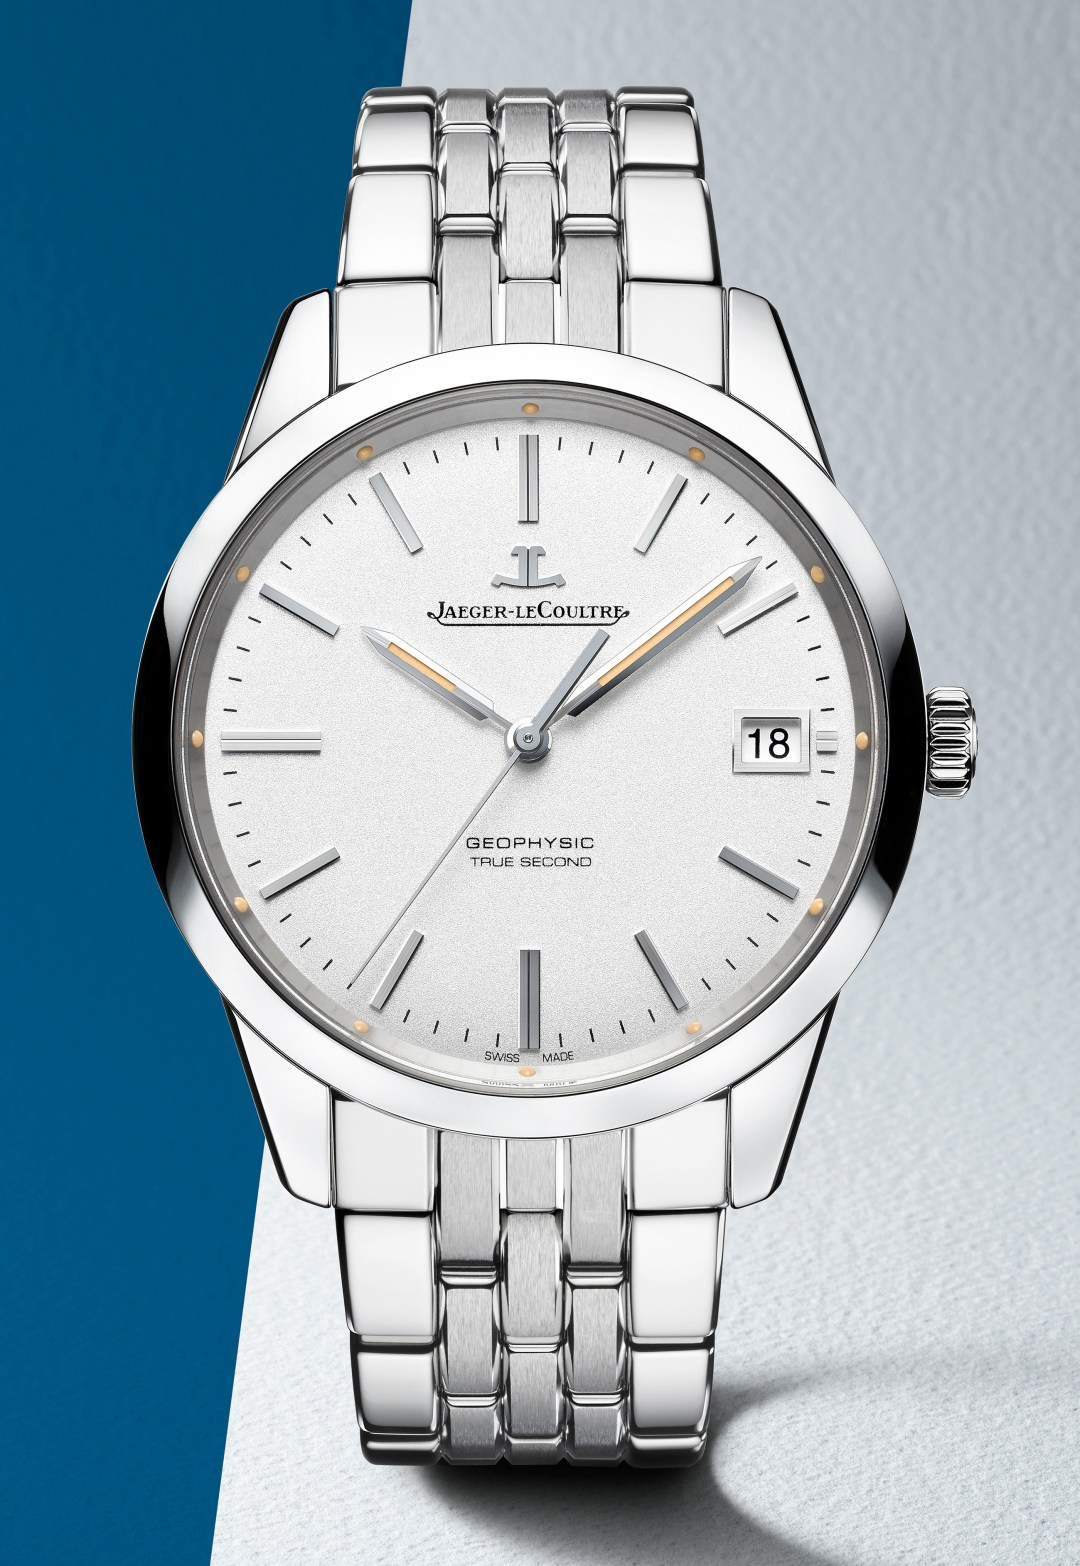 Jaeger-LeCoultre Geophysic True Second in steel_BG copy